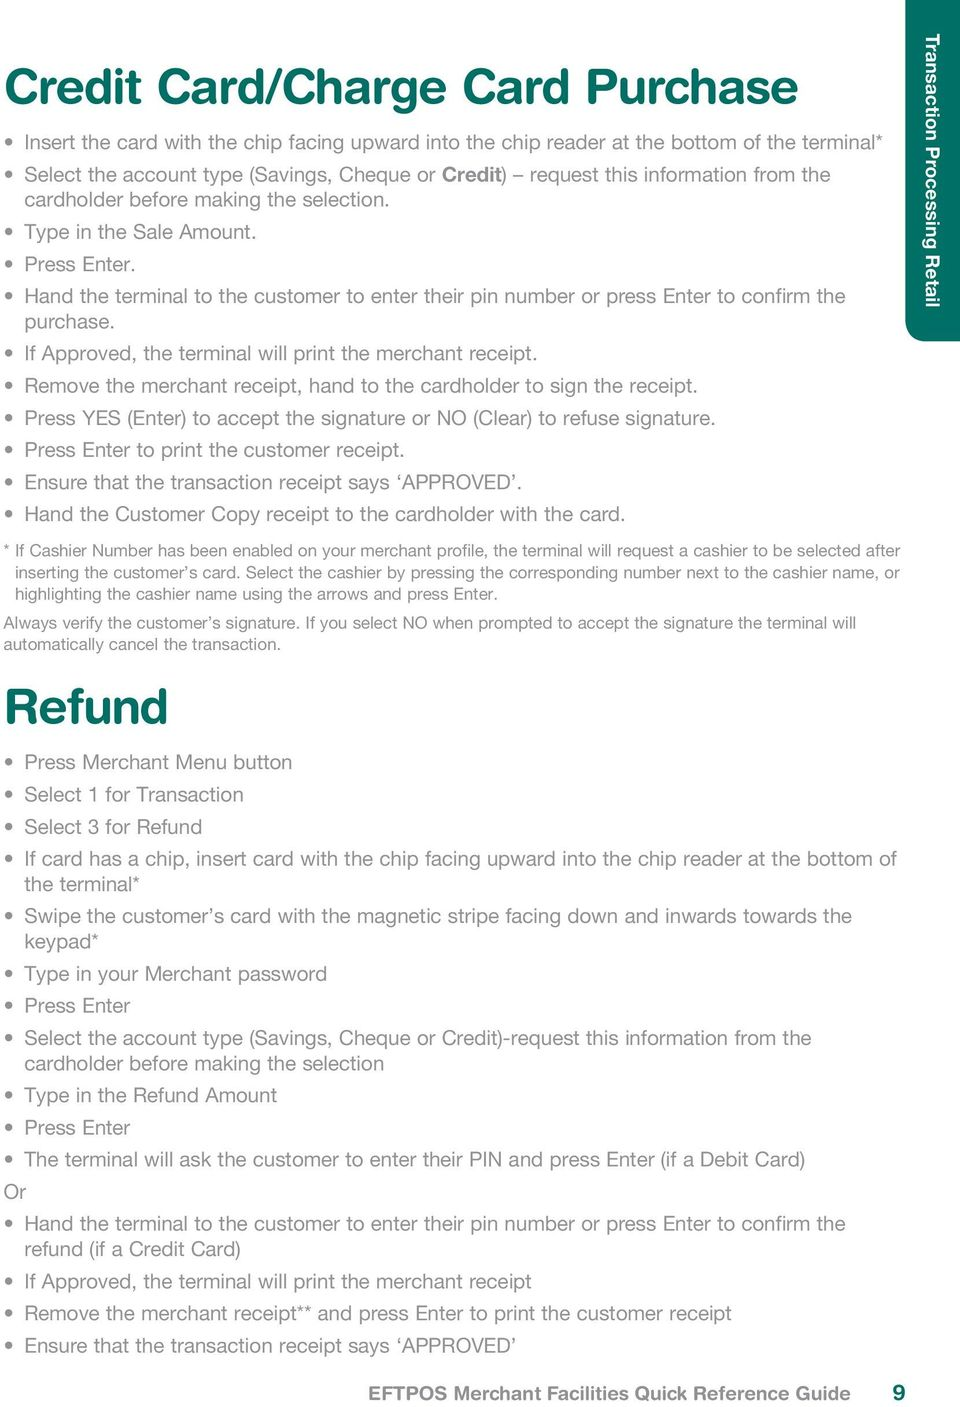 ... Quick Reference Guide 9. If Approved, the terminal will print the  merchant receipt. Remove the merchant receipt,